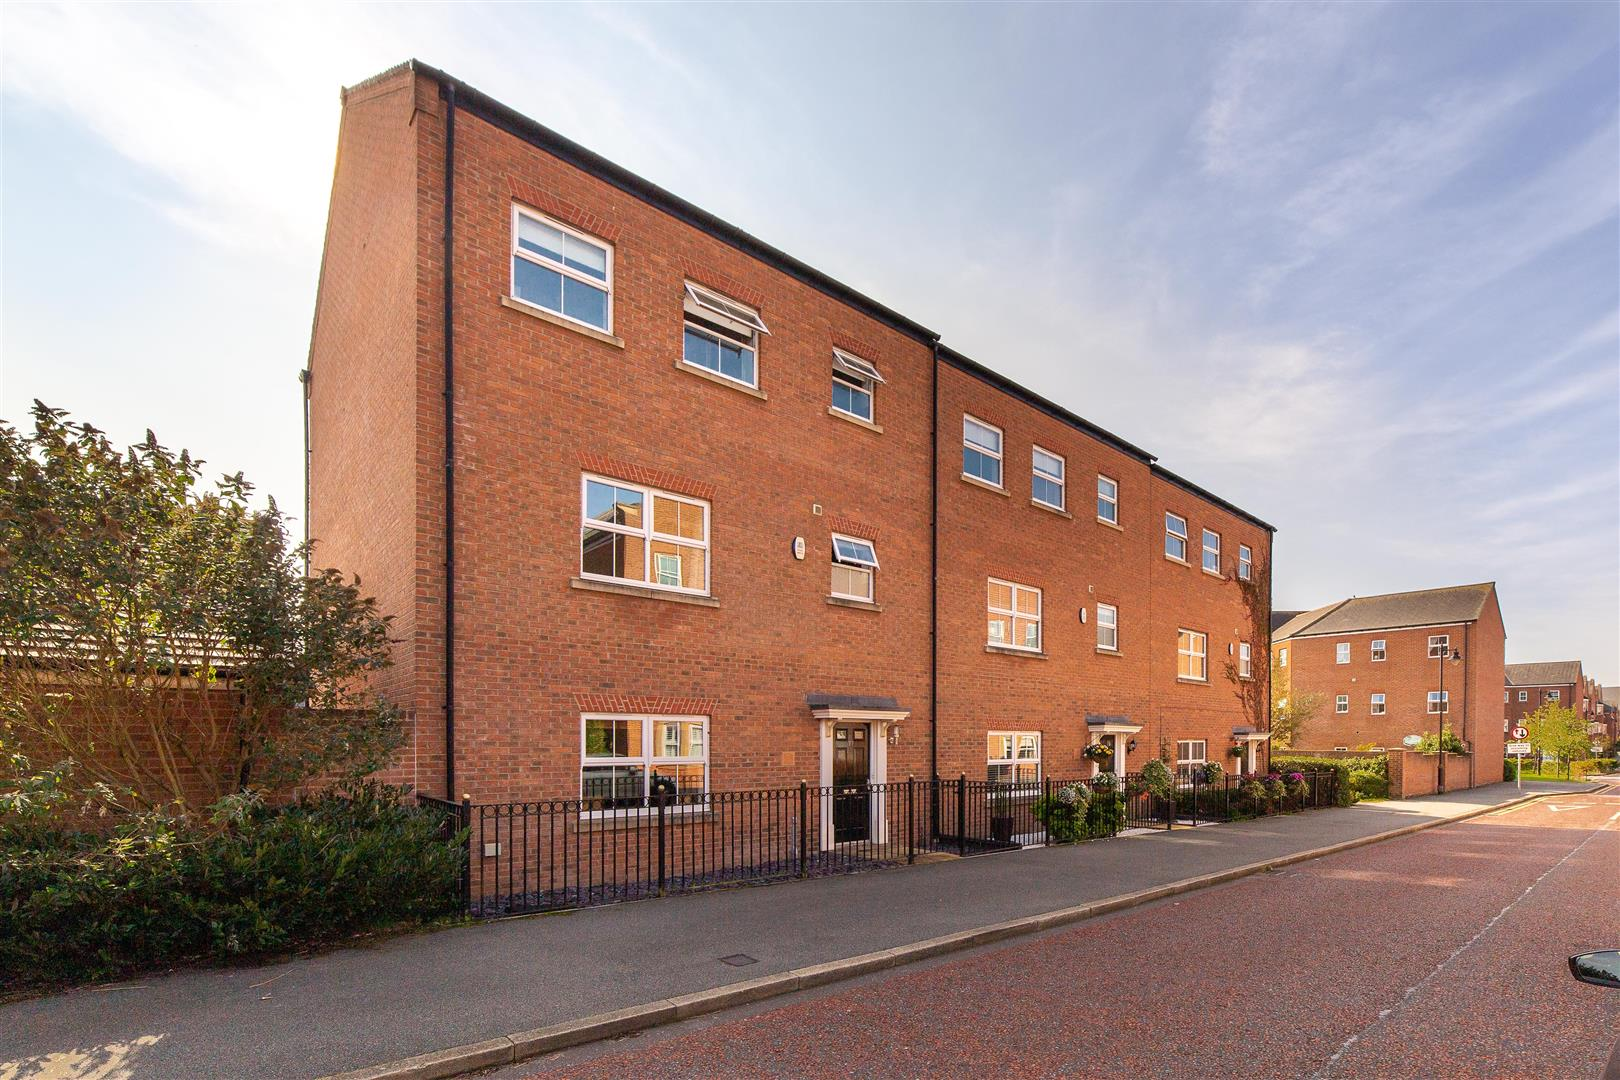 4 bed town house for sale in Newcastle Upon Tyne, NE3 5RF 0